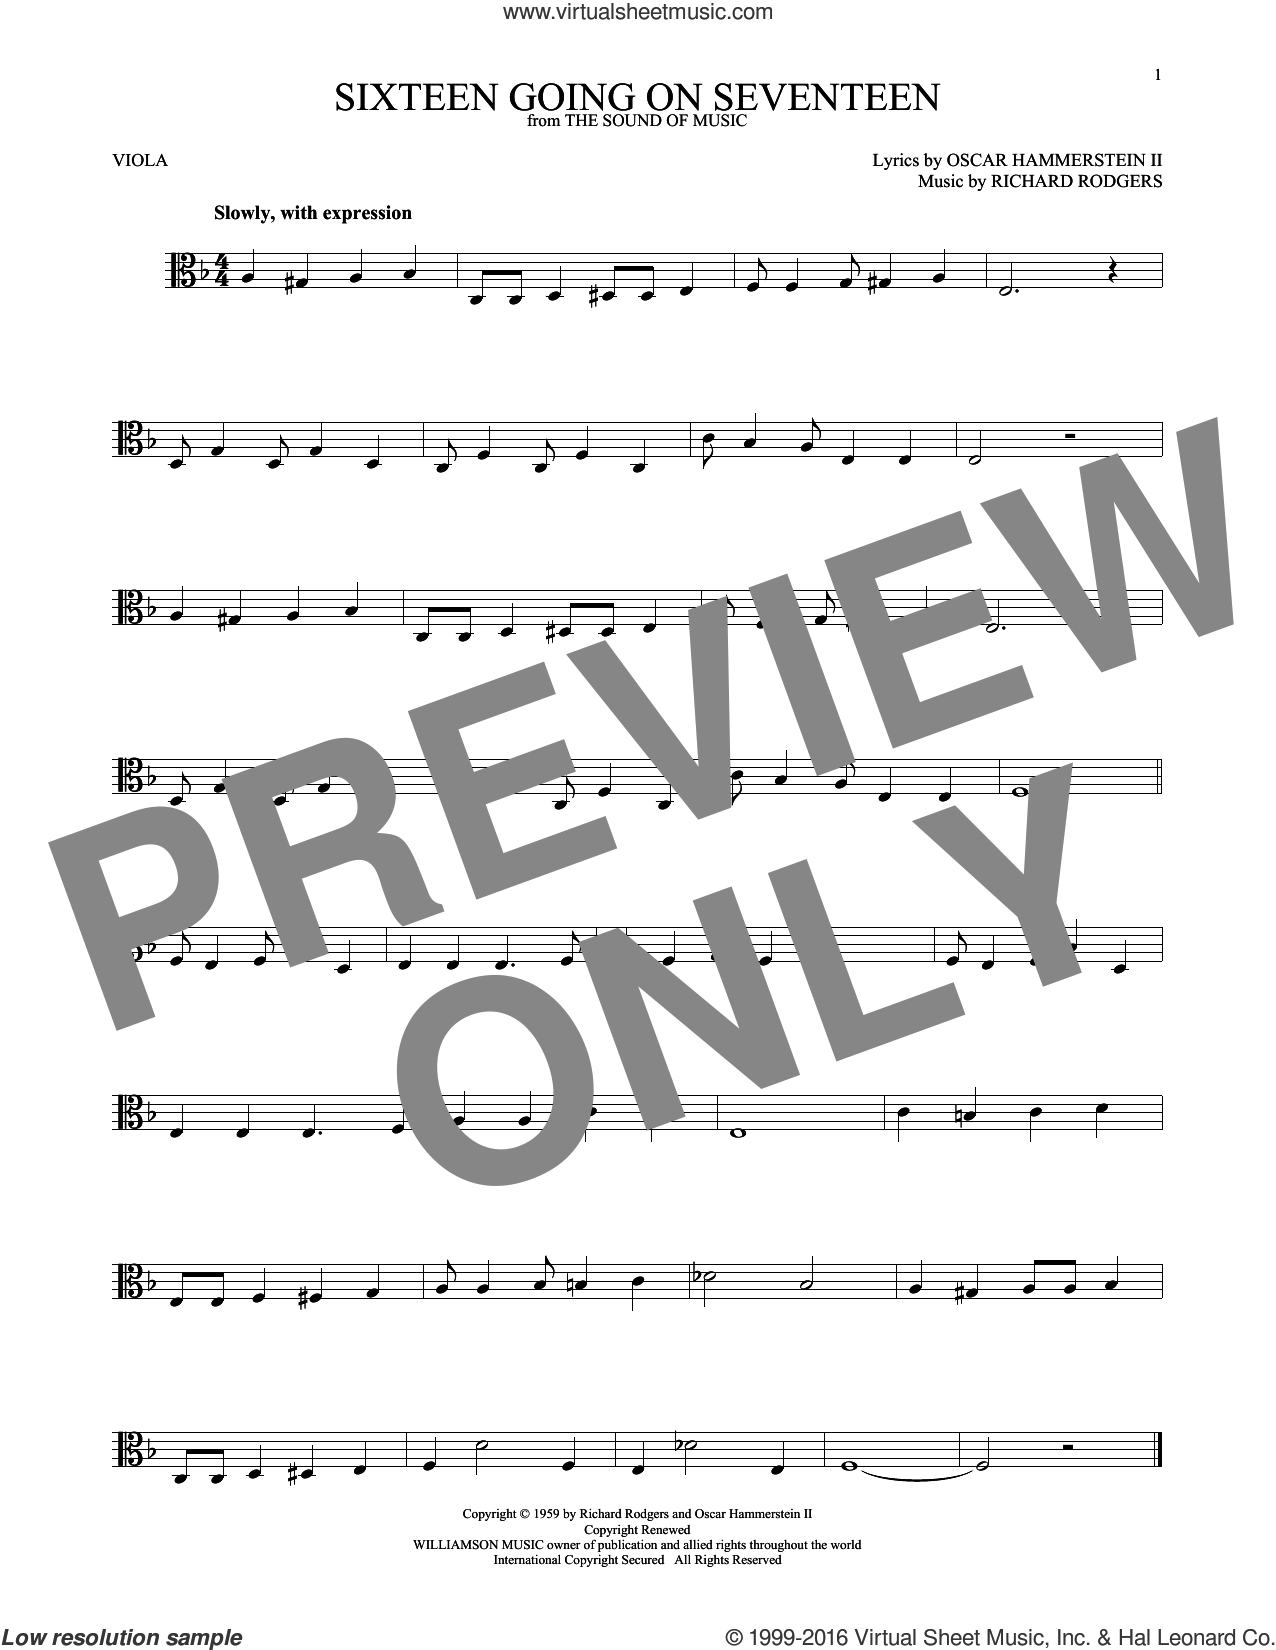 Sixteen Going On Seventeen (from The Sound of Music) sheet music for viola solo by Rodgers & Hammerstein, Oscar II Hammerstein and Richard Rodgers, intermediate skill level